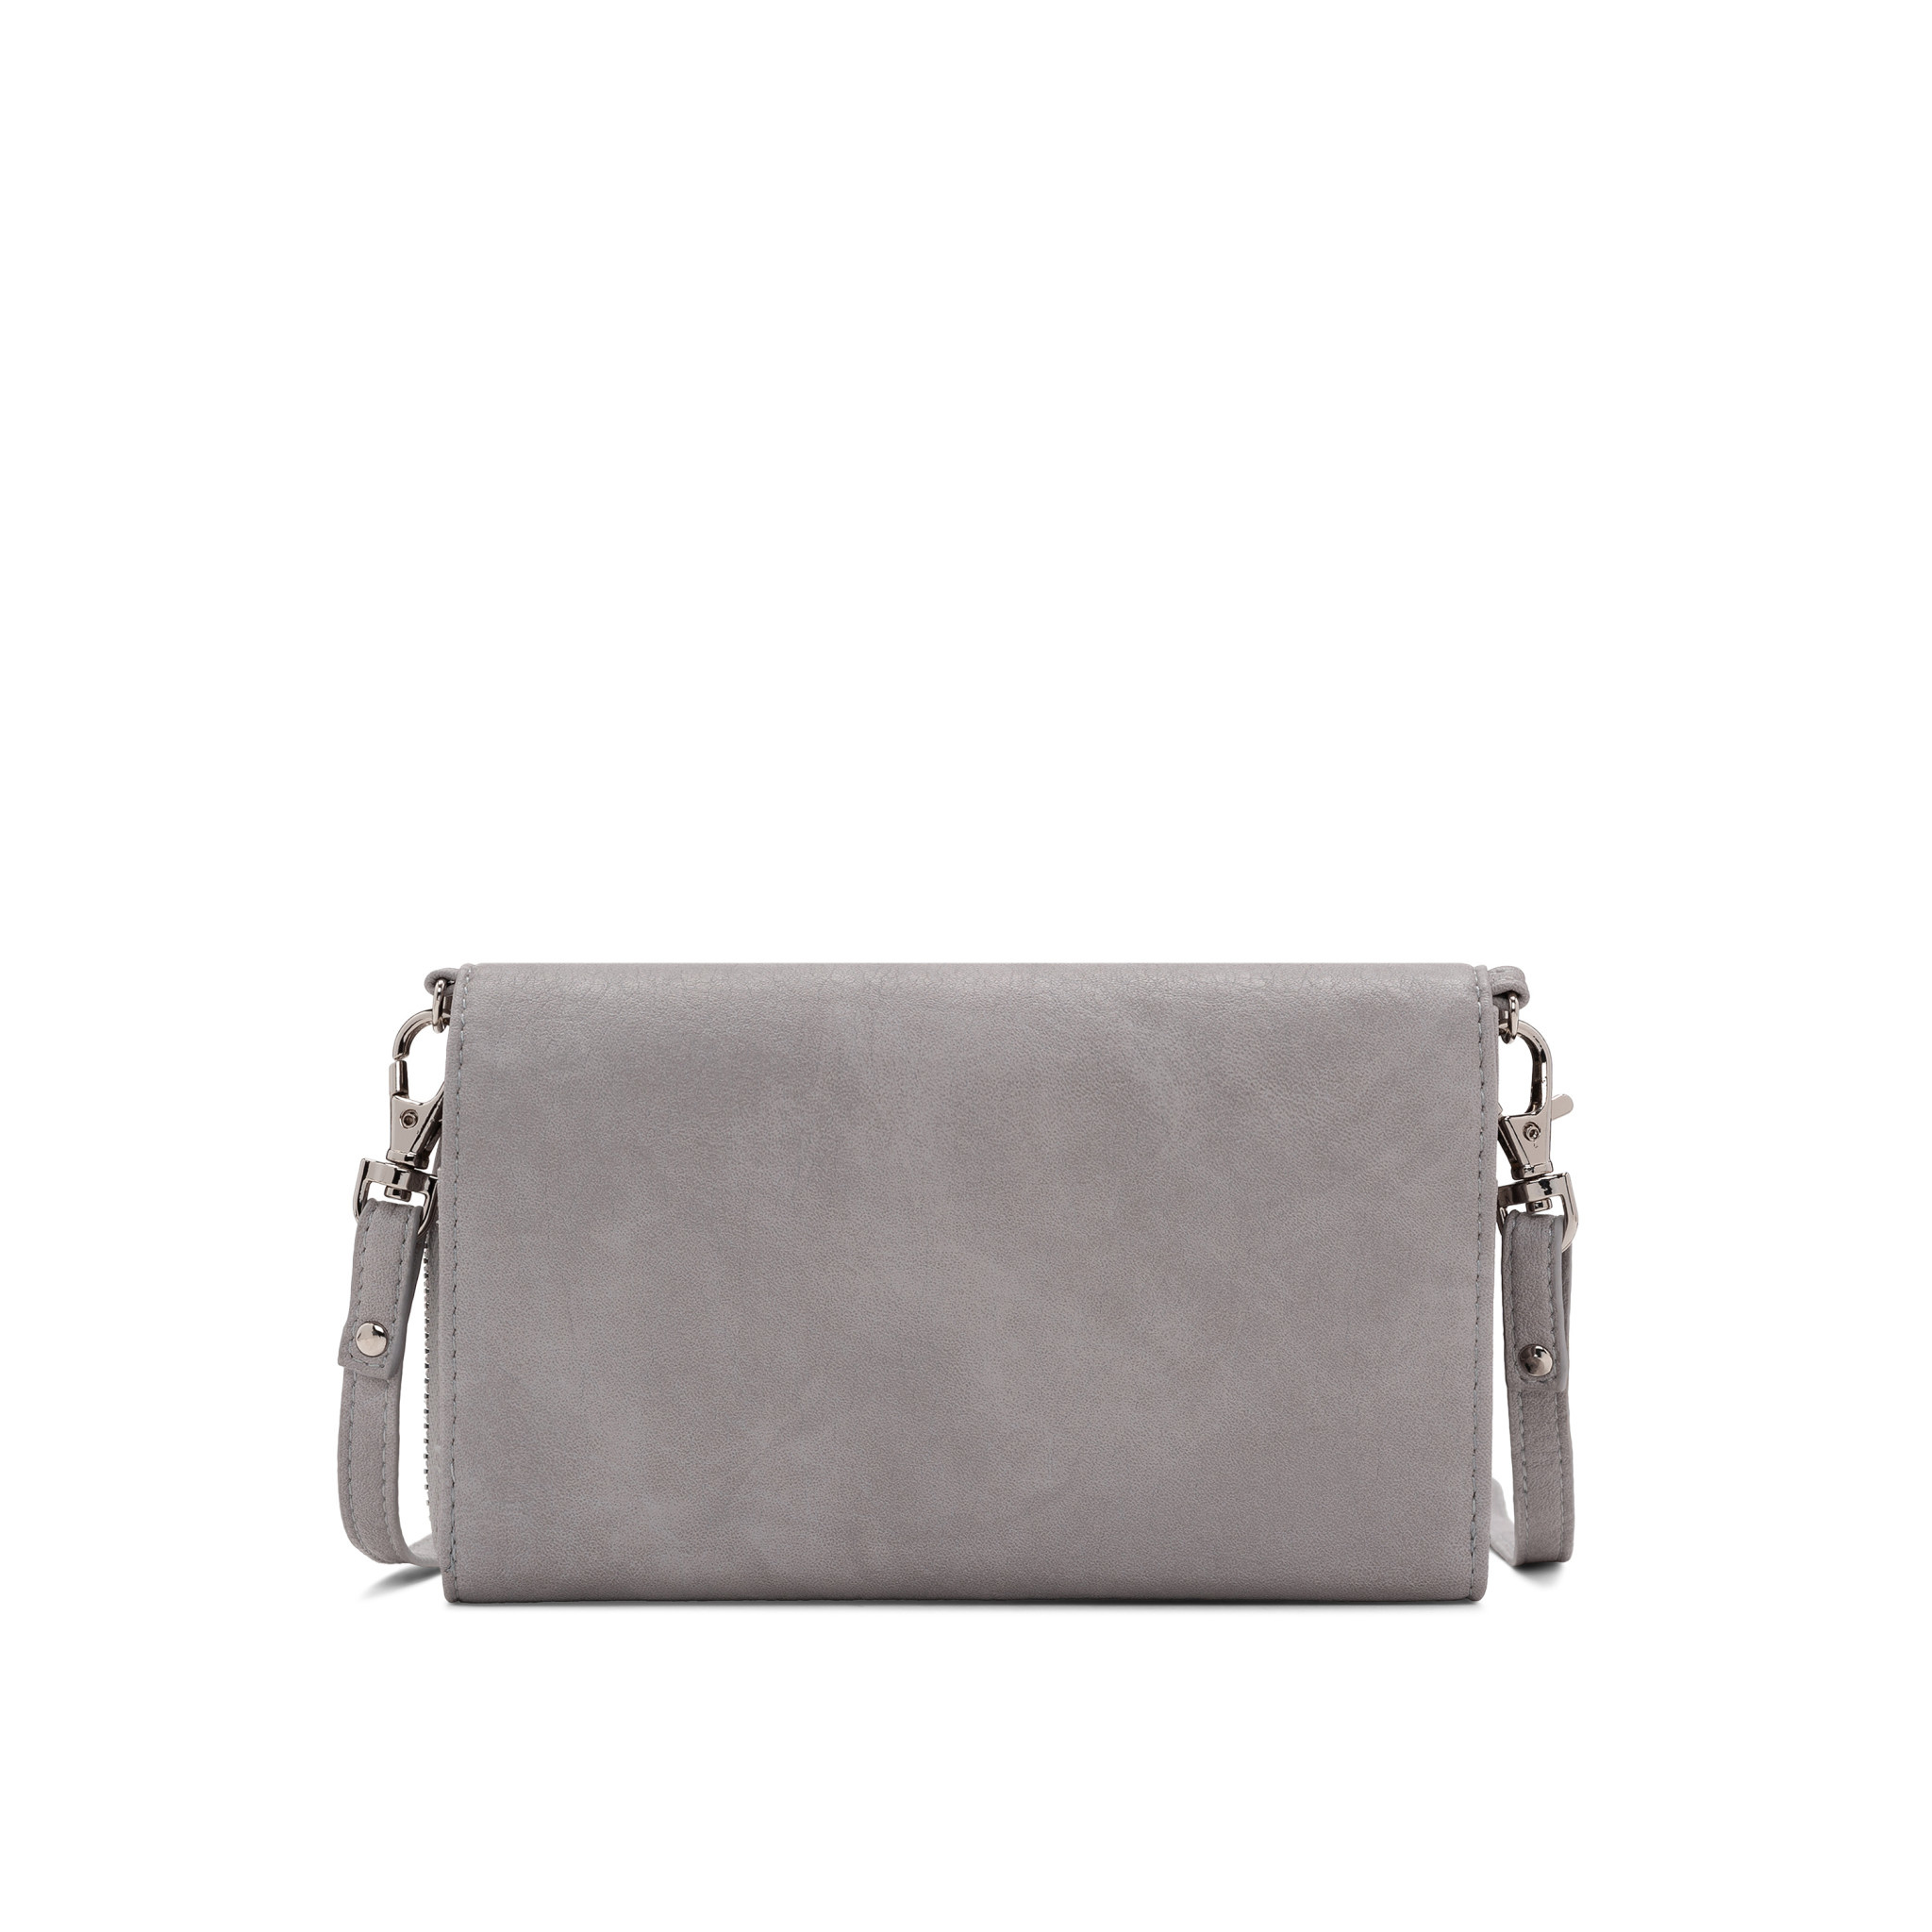 Colab Colab Washed Vintage 2.0 Wallet Crossbody (#6407) - Gray